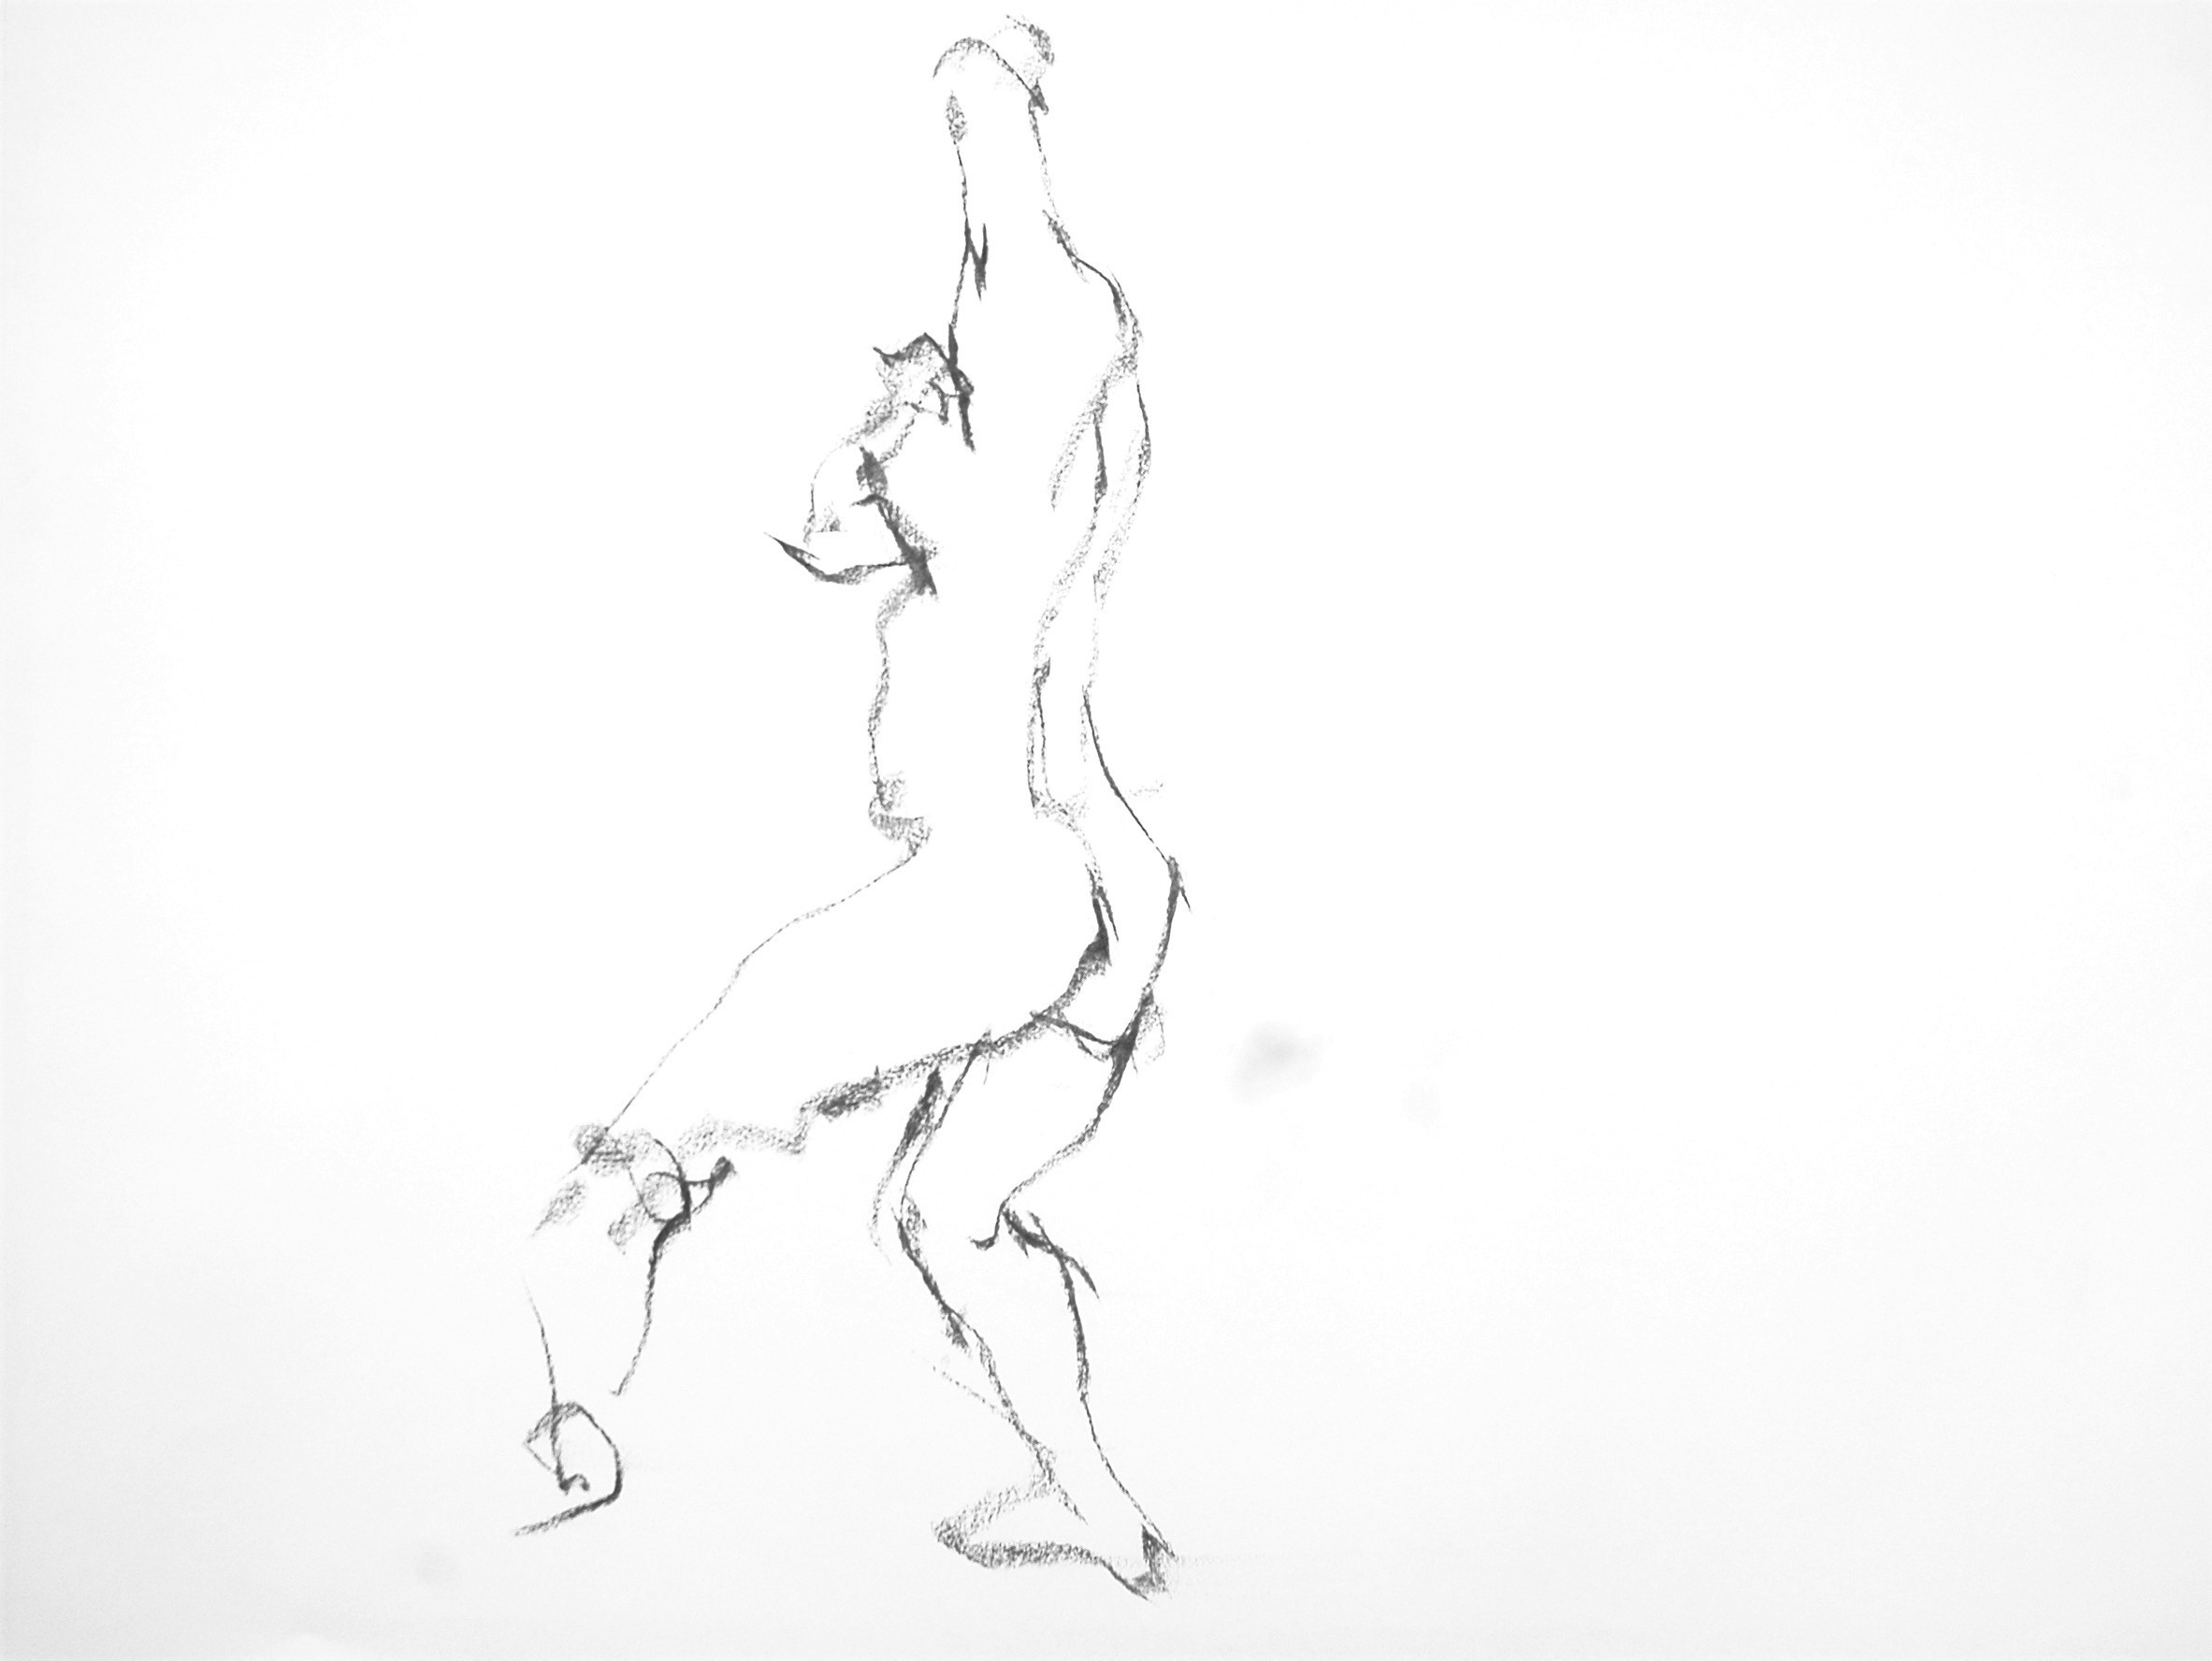 《 (Moveing) ―― 連続する90 second croquis  4 》 _f0159856_07374386.jpg